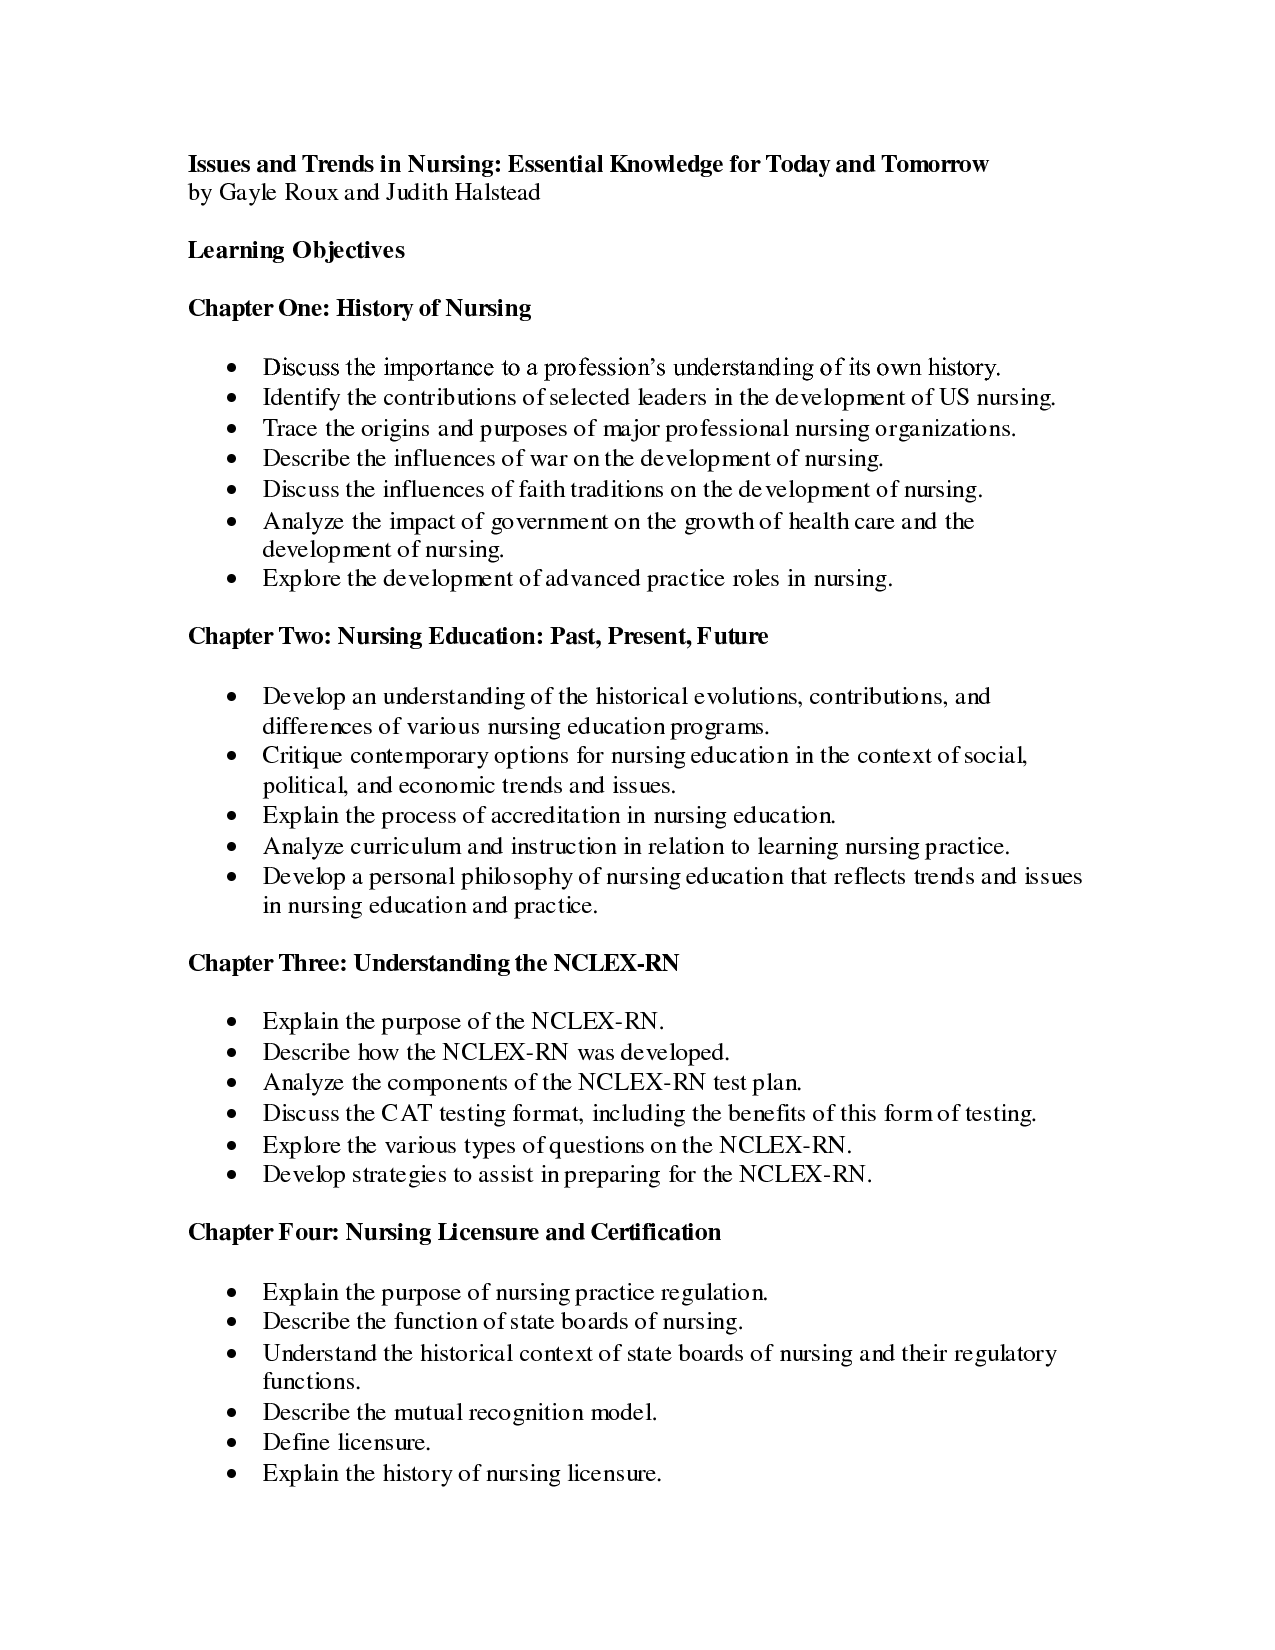 007 Research Paper Nursing Example Best Outline Theoretical Framework Examples Full